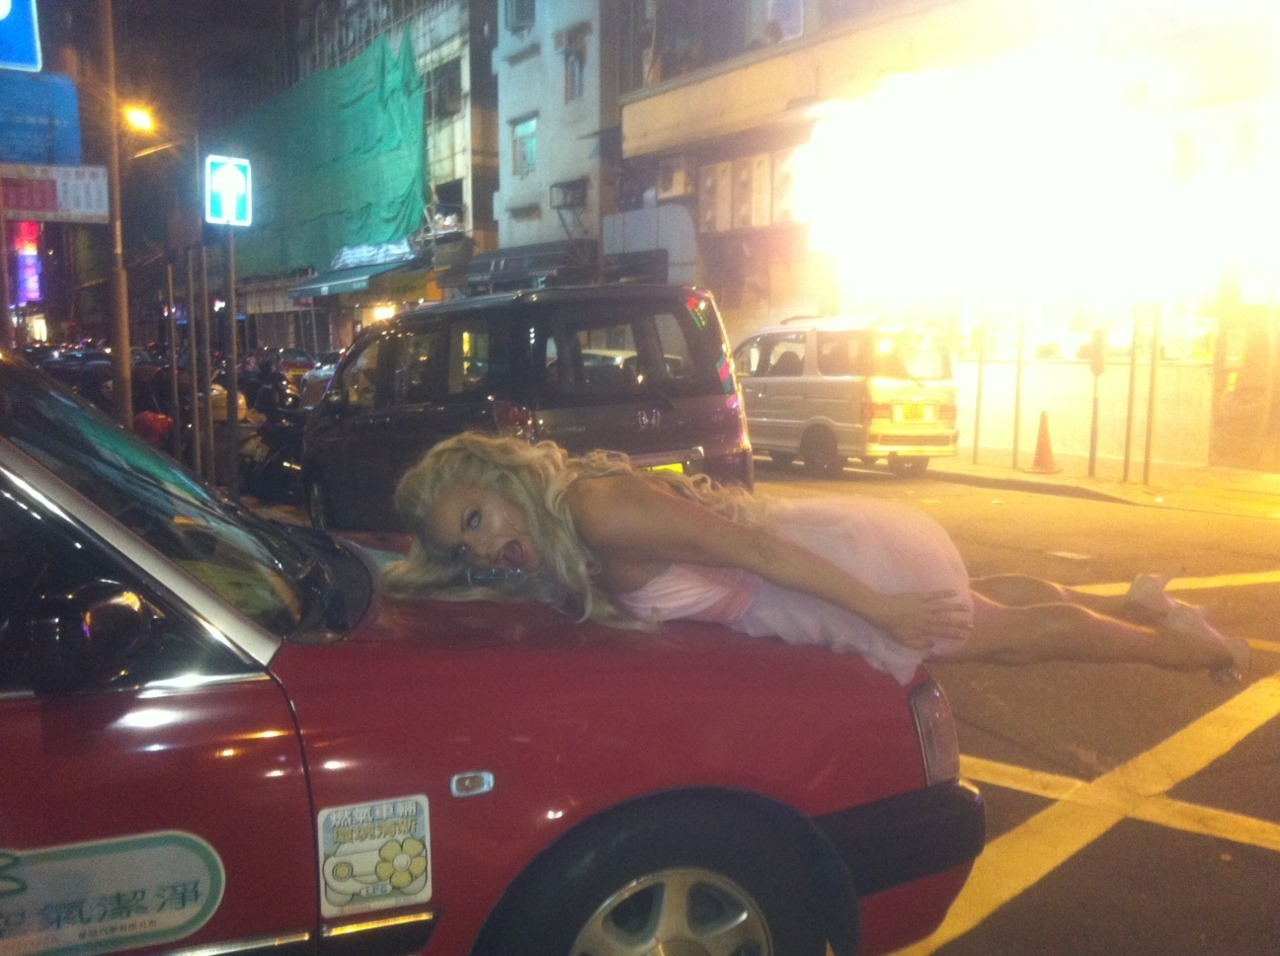 This is me planking on a taxi in Hong Kong… the only down side is I left my suit case containing EVERYTHING, all of my makeup, dresses, wigs, MY GRATITUDE JOURNAL in the boot of the taxi! THIS IS WHY PLANKING IS DANGEROUS KIDS!